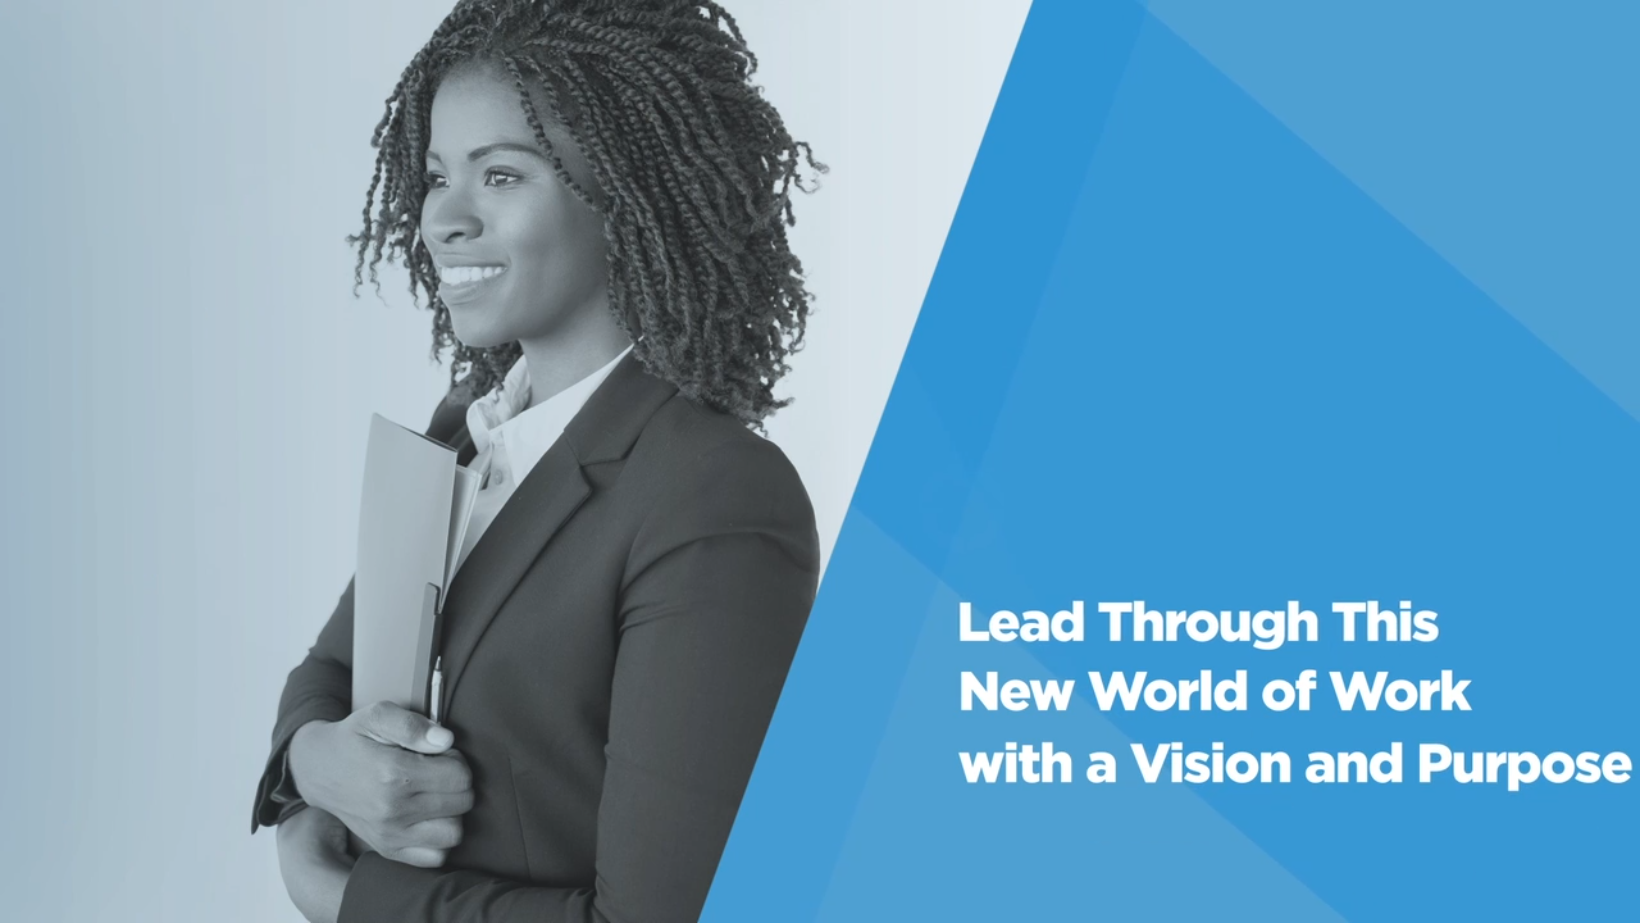 Video: Be a Better Leader: Lead With Vision and Purpose